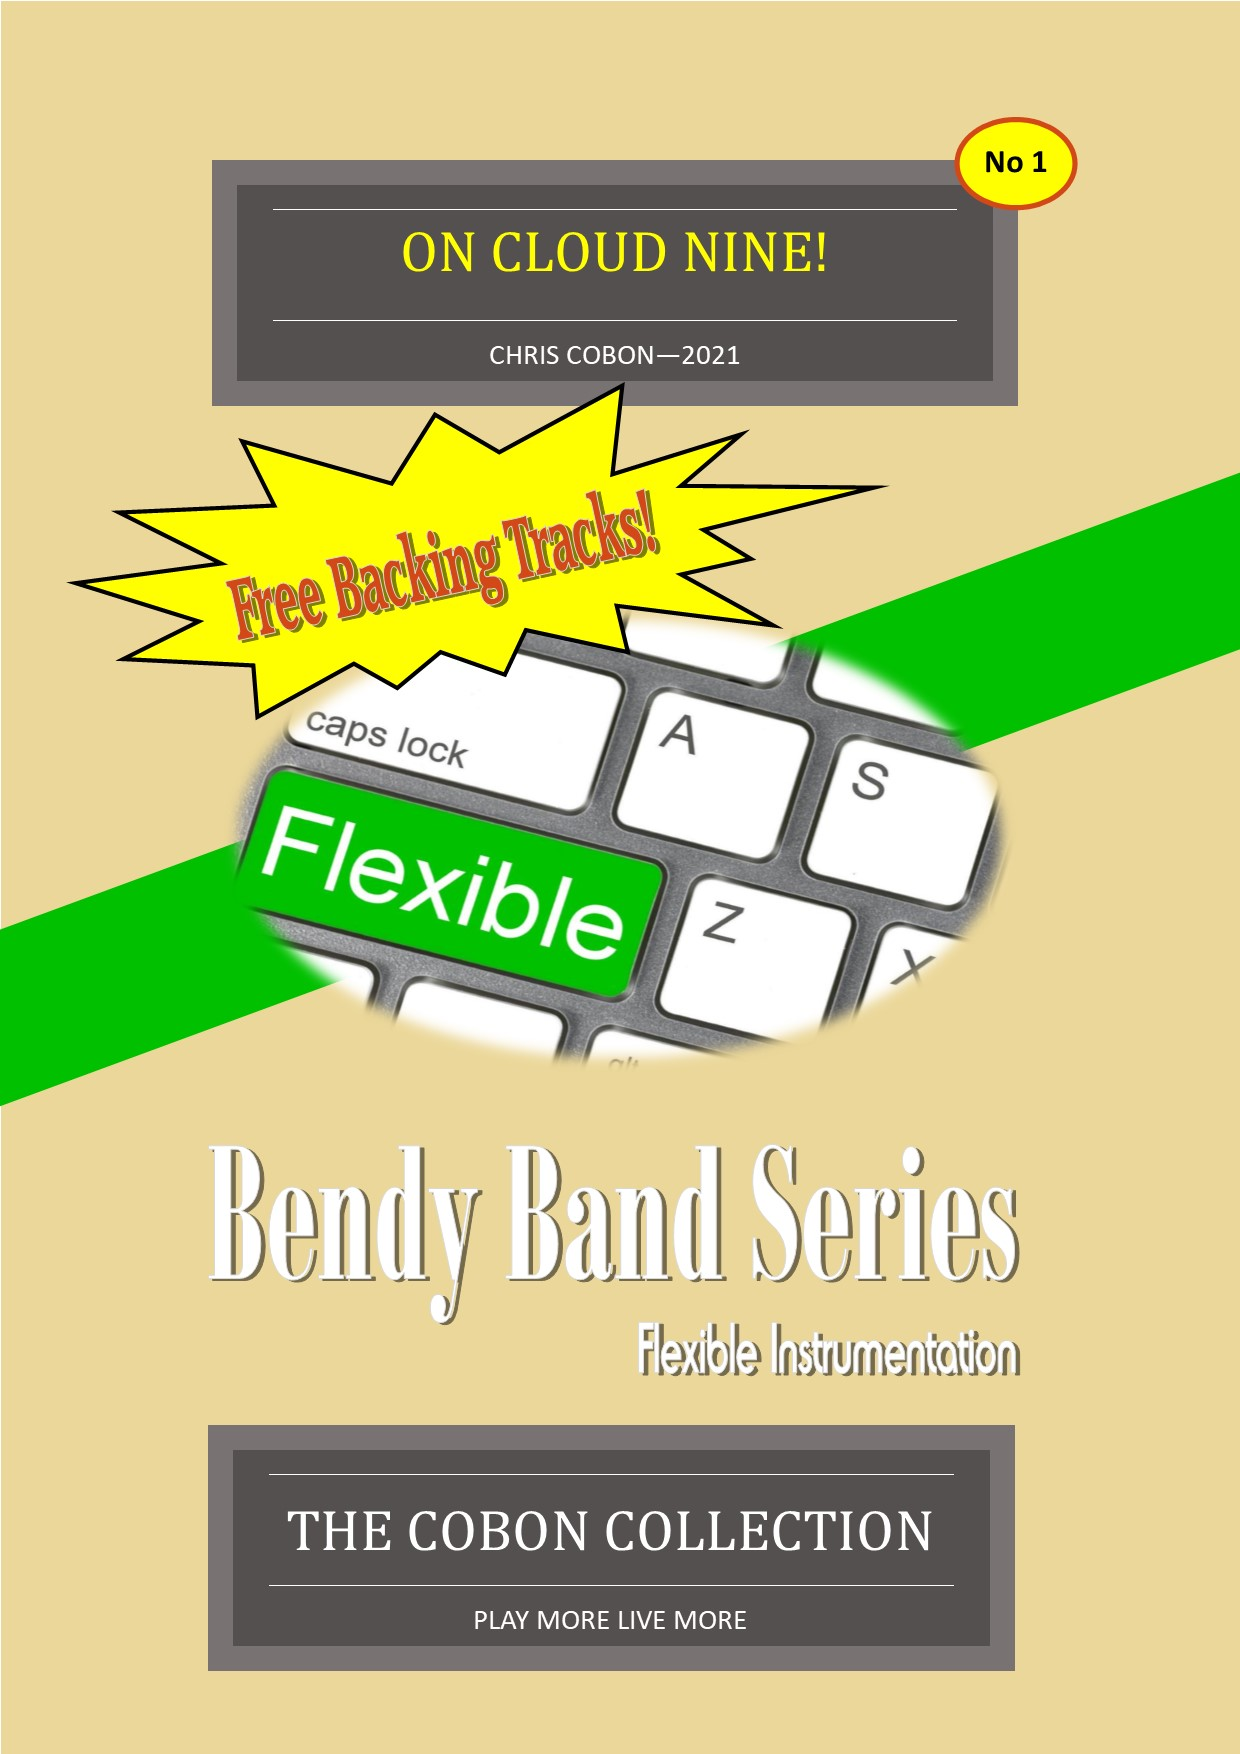 On Cloud Nine! (Flexible instrumentation) No1 in the Bendy Band Series